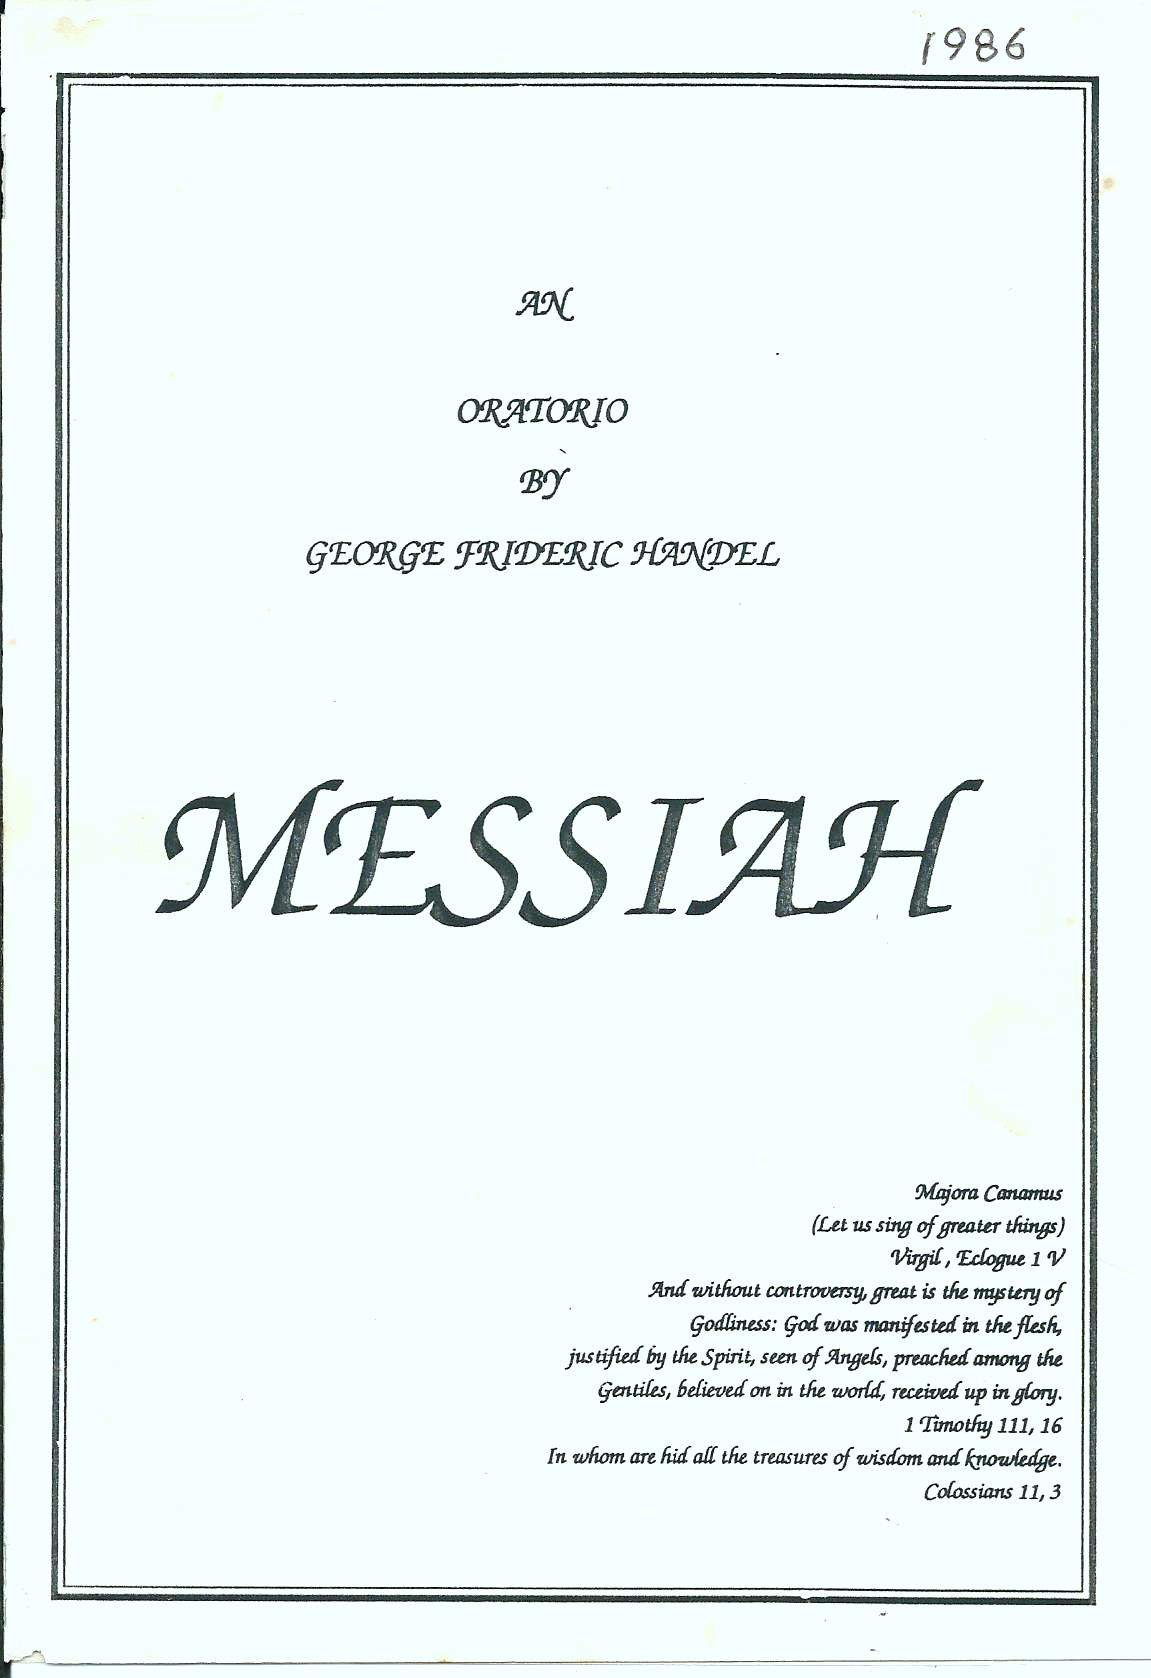 Messiah 1986